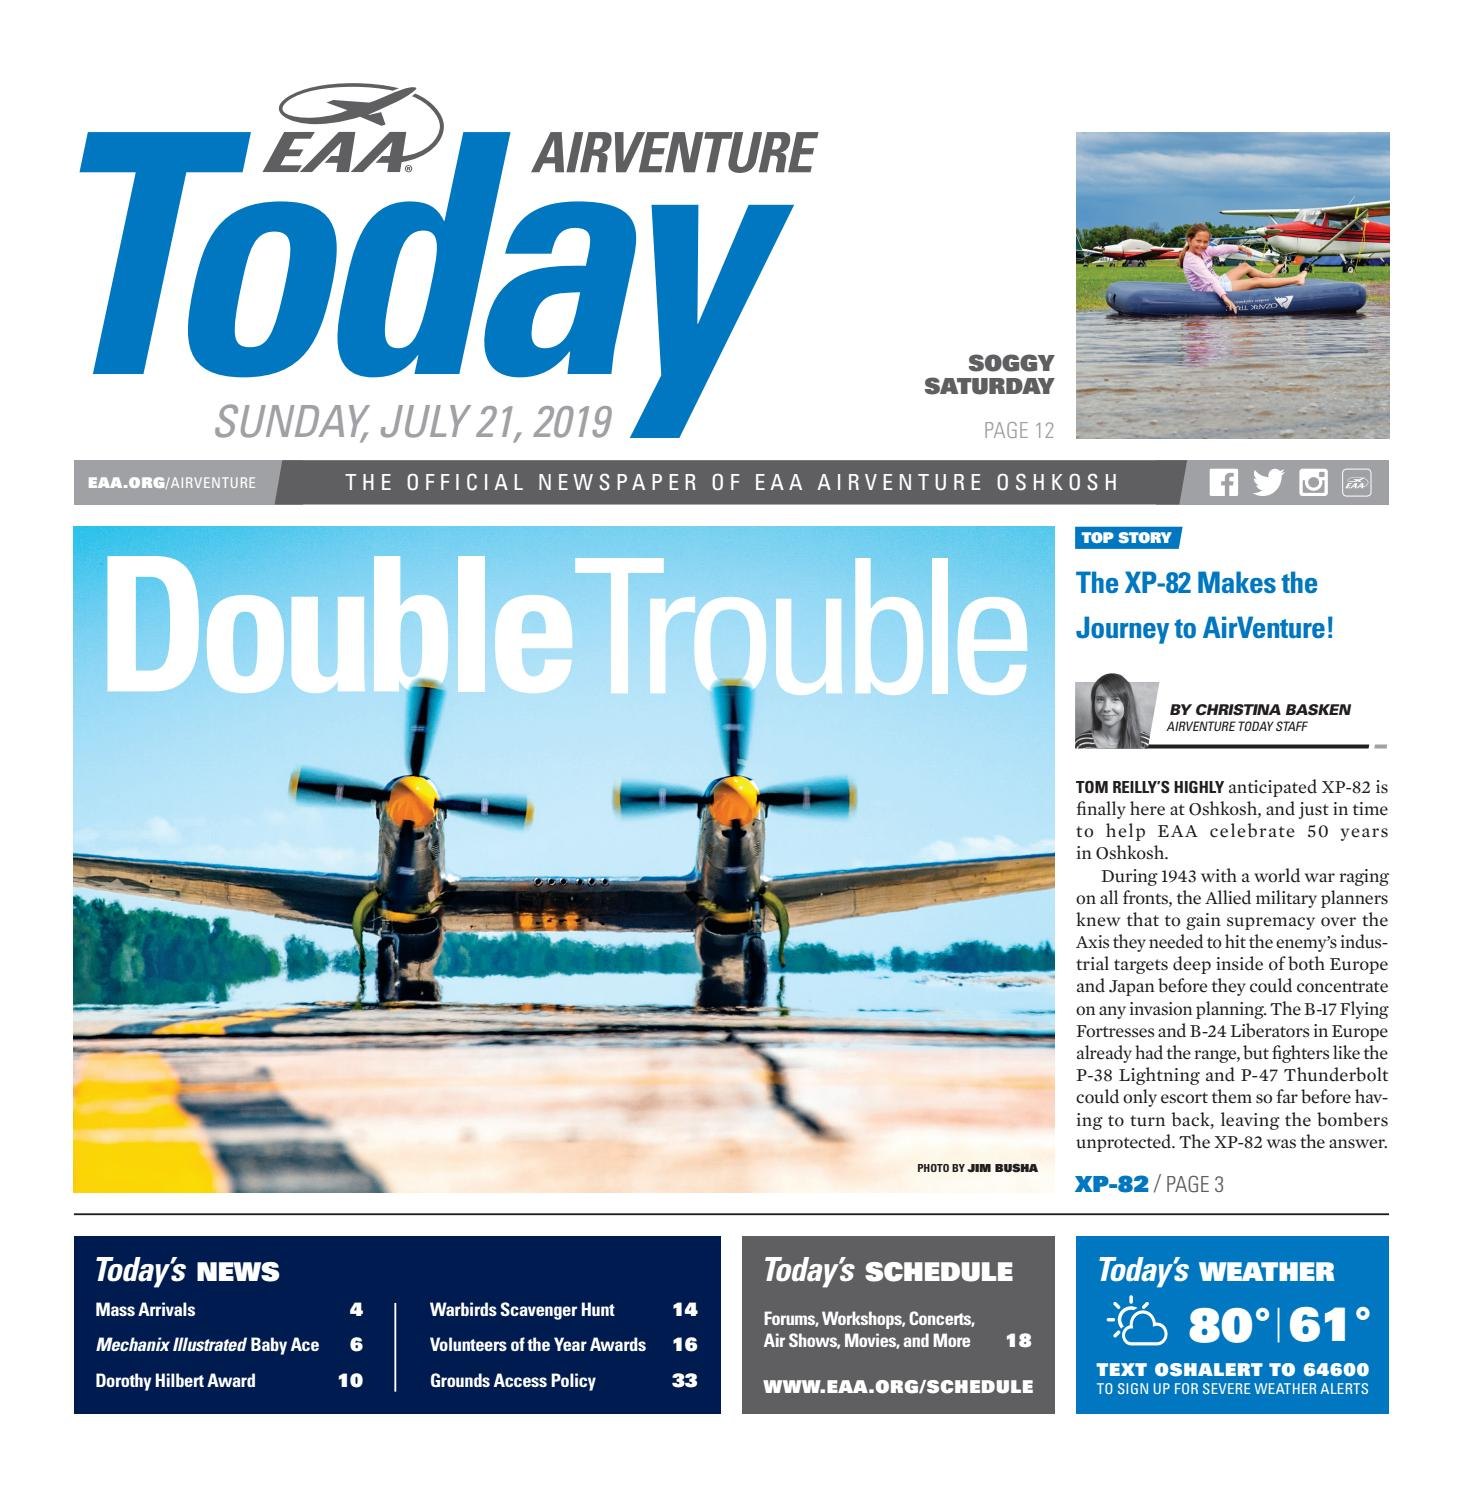 EAA AirVenture Today - Sunday, July 21, 2019 by EAA